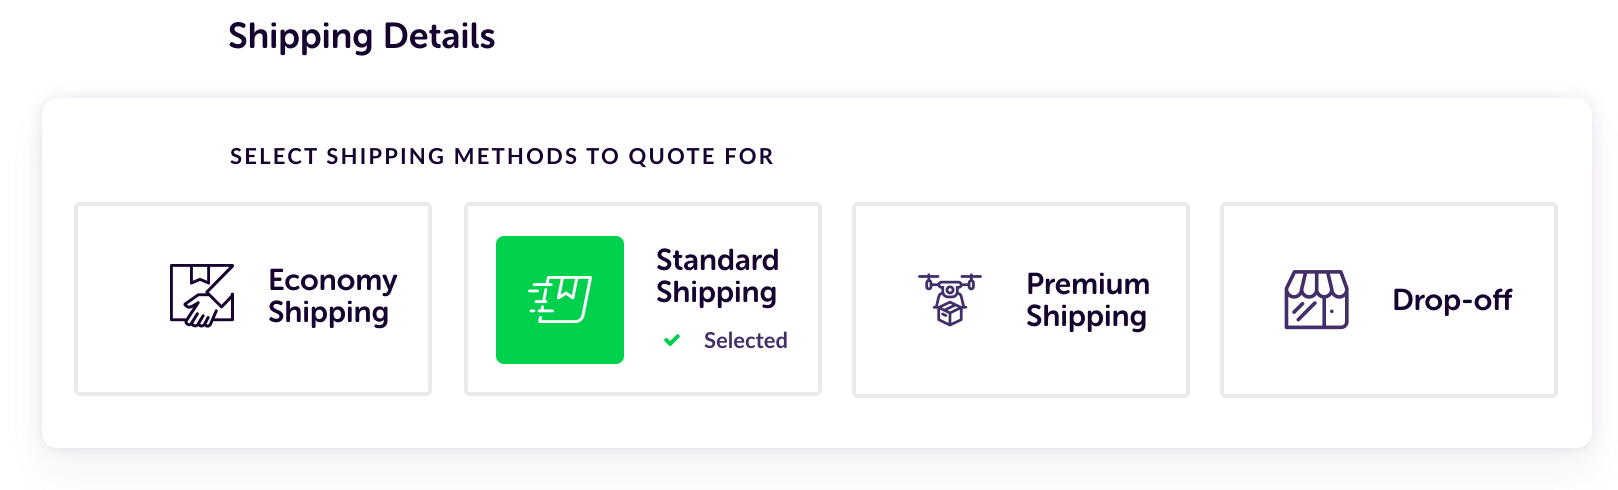 carriers_shipping_method